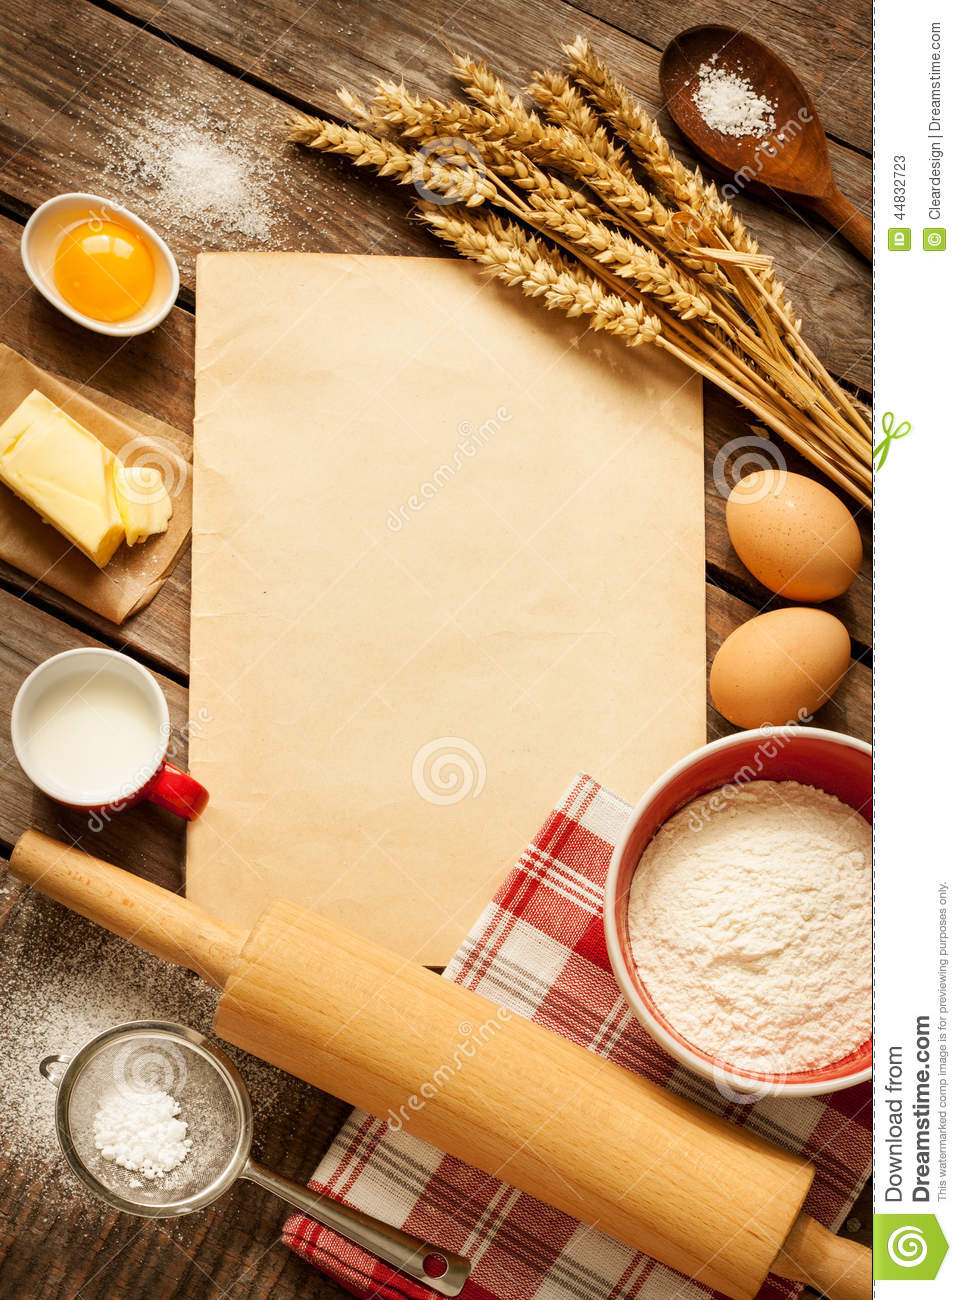 rural kitchen baking cake ingredients and blank paper background stock photo image 44832723. Black Bedroom Furniture Sets. Home Design Ideas